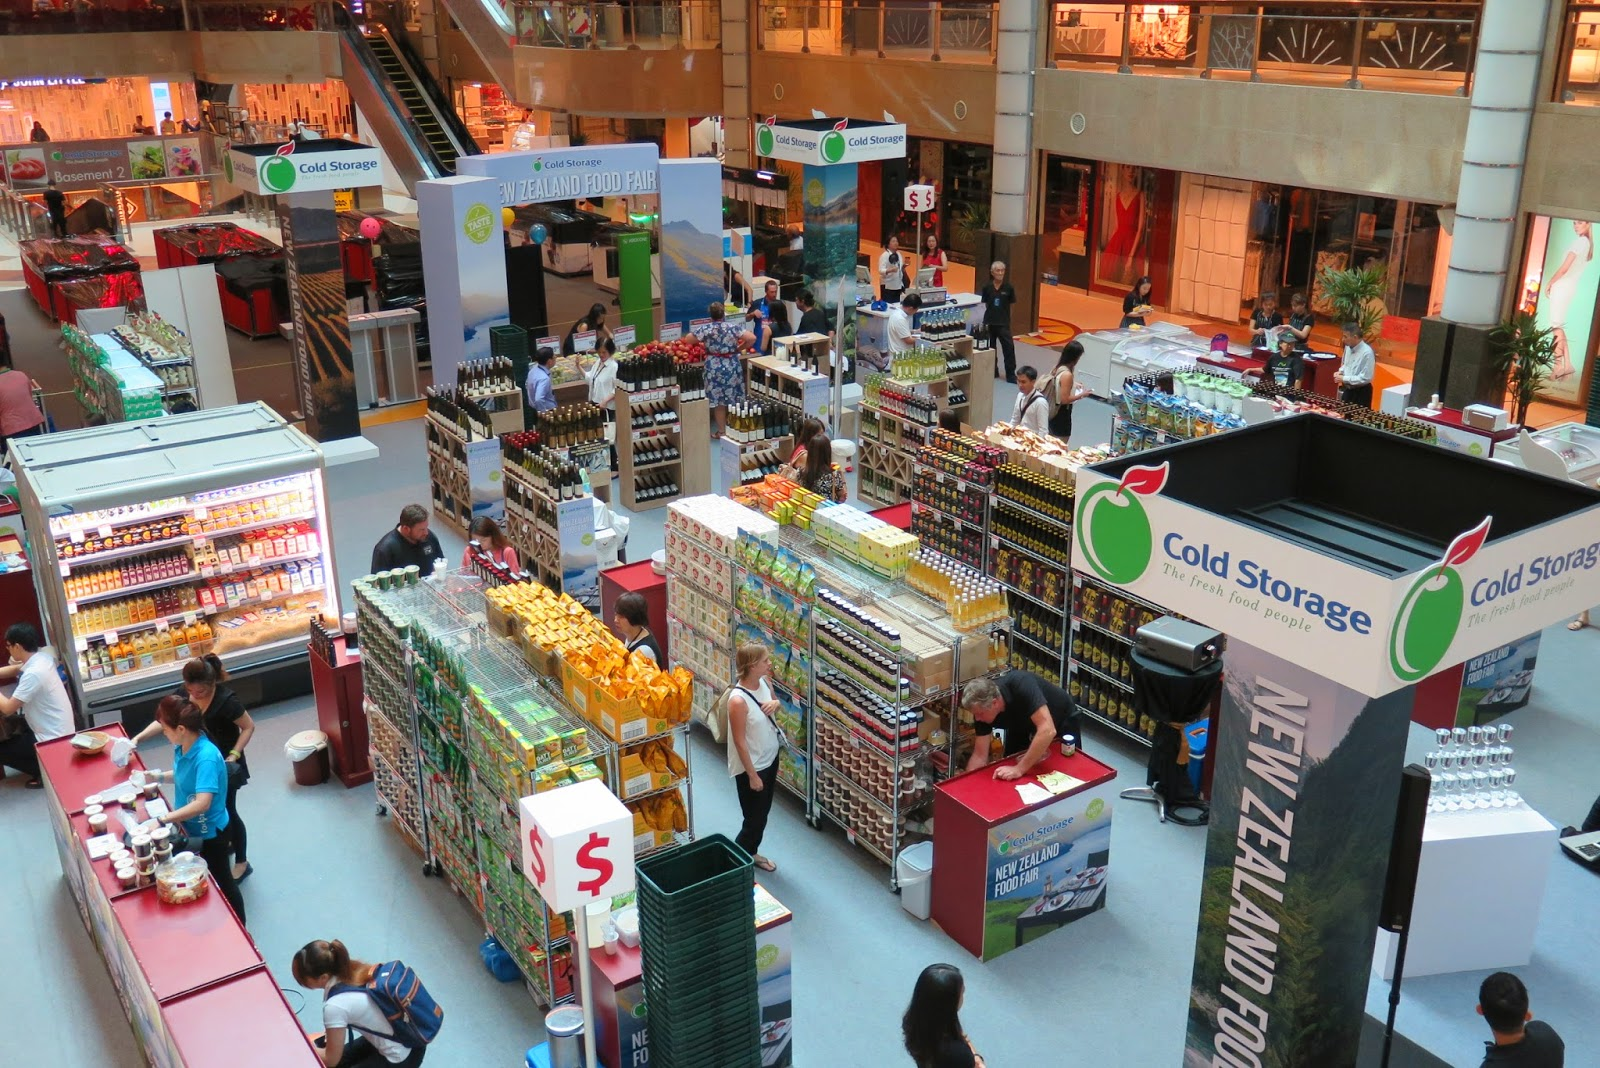 ... fresh seasonal food and speciality products the third annual edition of the New Zealand Food Fair returns at Cold Storage from 18 May to 24 May 2015 ... & New Zealand Food Fair 2015 At Cold Storage Singapore | NEW Blog at ...